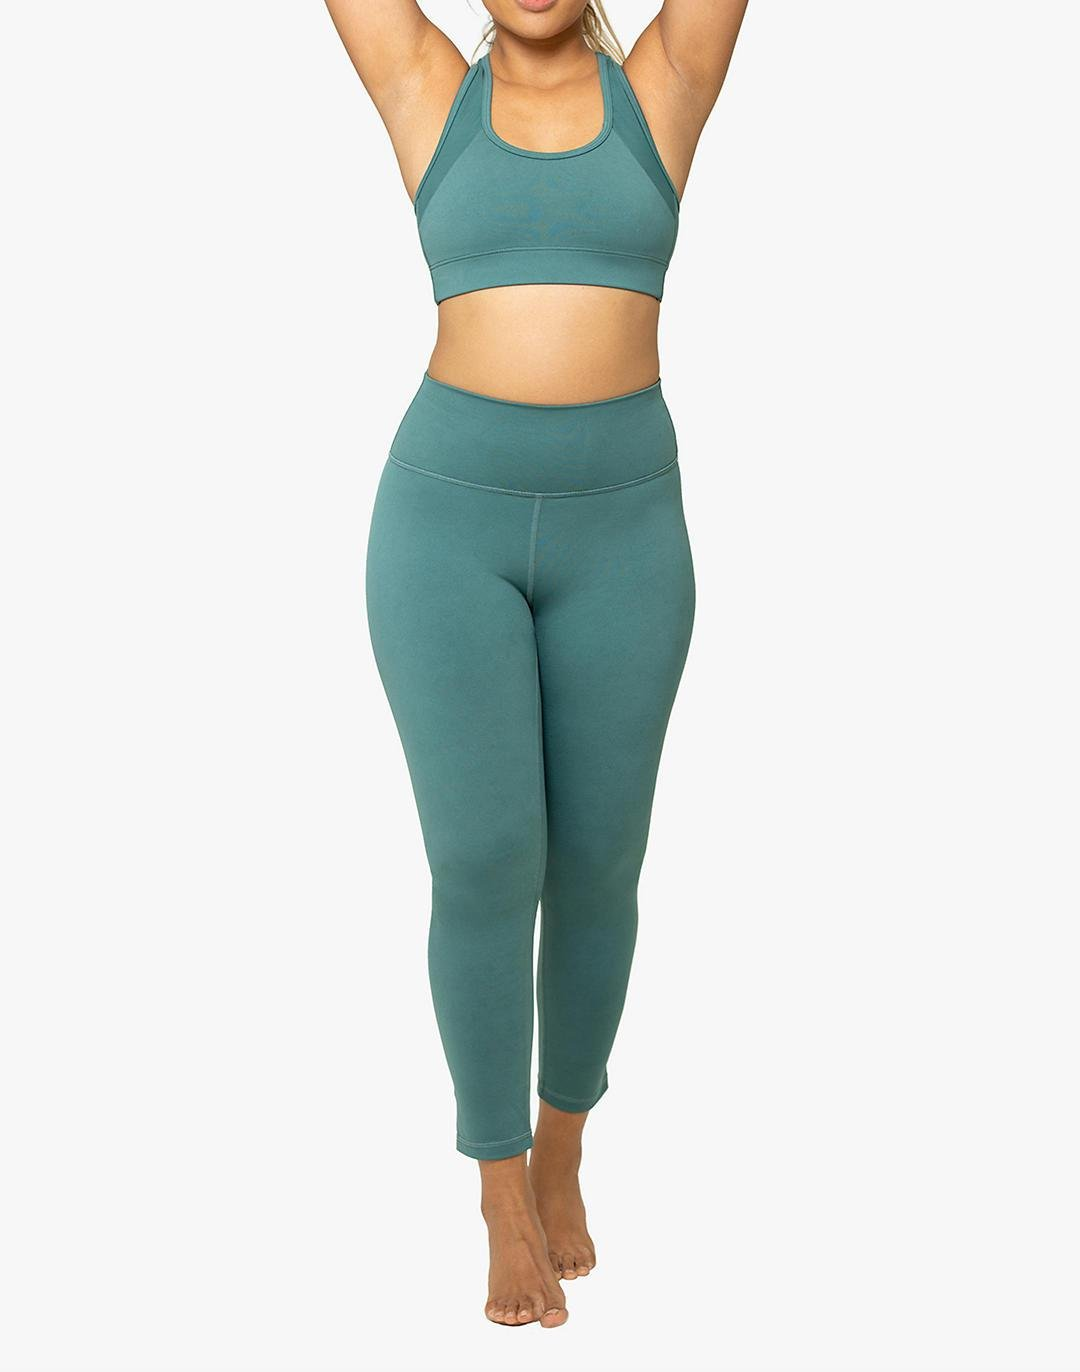 LIVELY The Active Legging